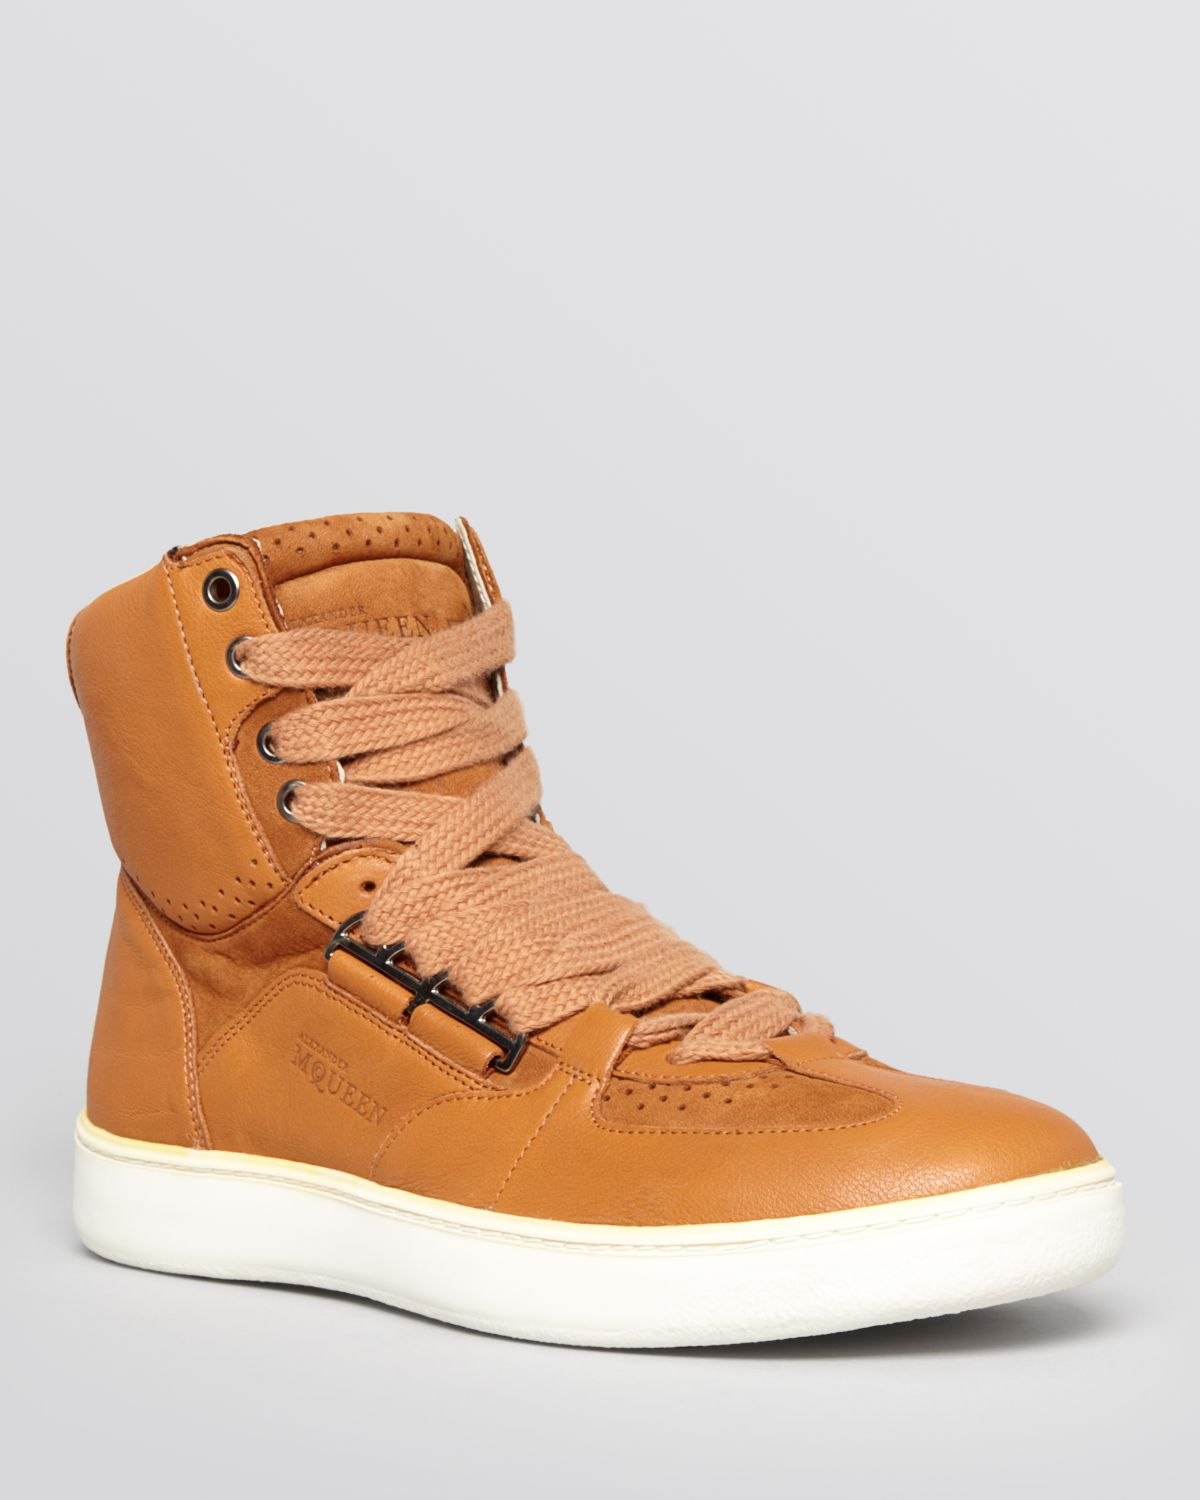 Lyst - PUMA Alexander Mcqueen Joust Mid Iv Sneakers in Brown for Men 8313b7f85